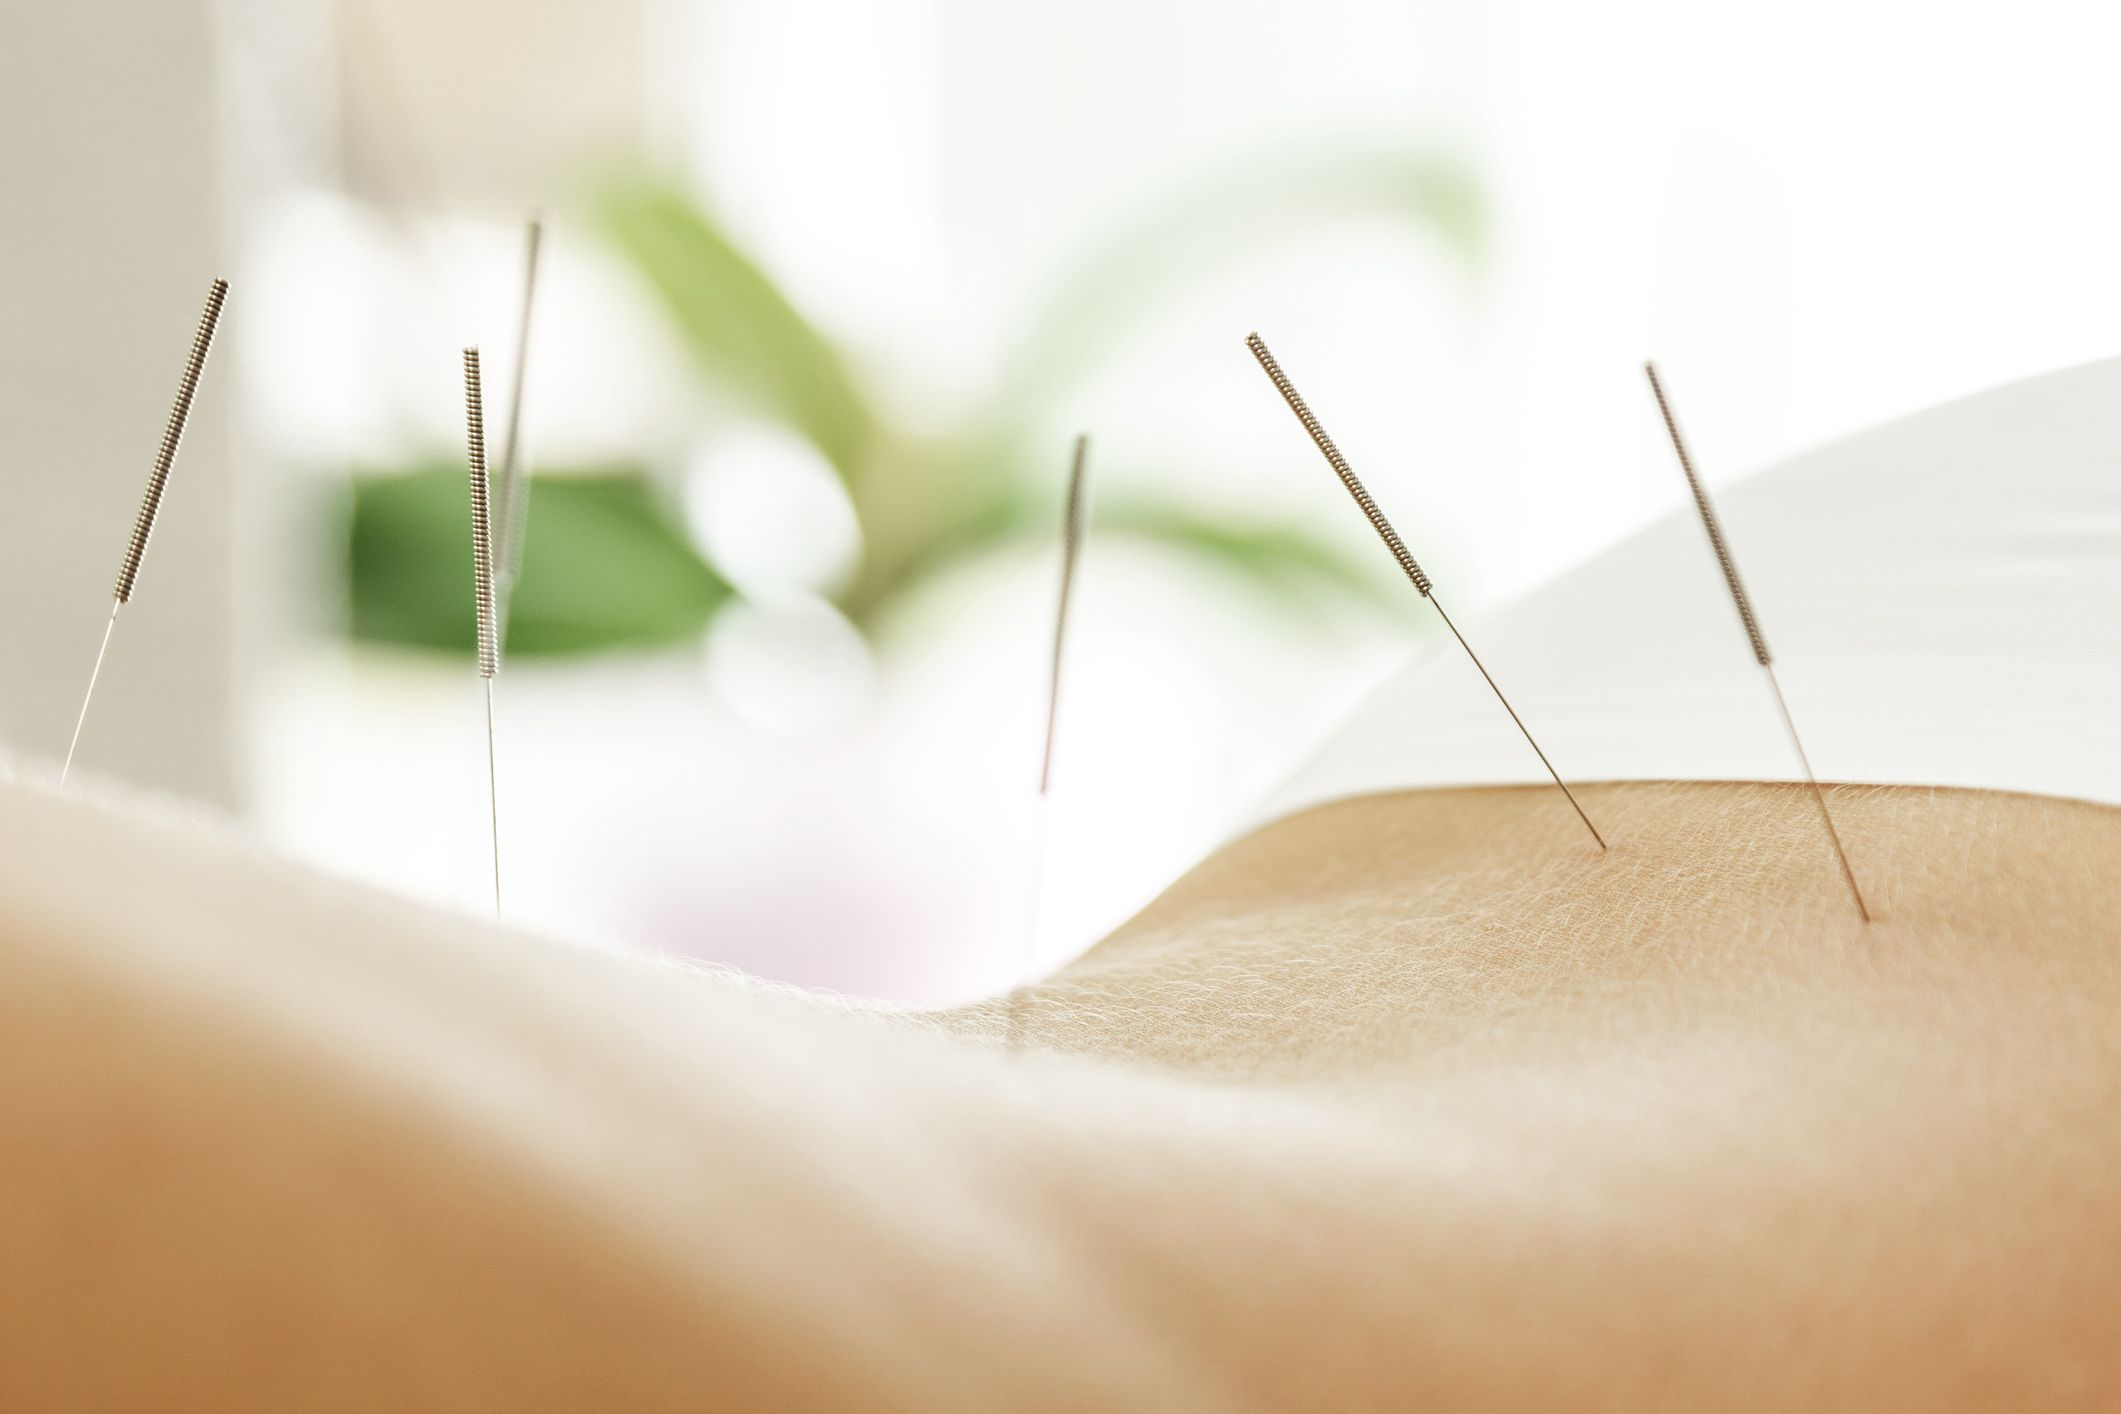 Acupuncture for Weight Loss: Does It Work